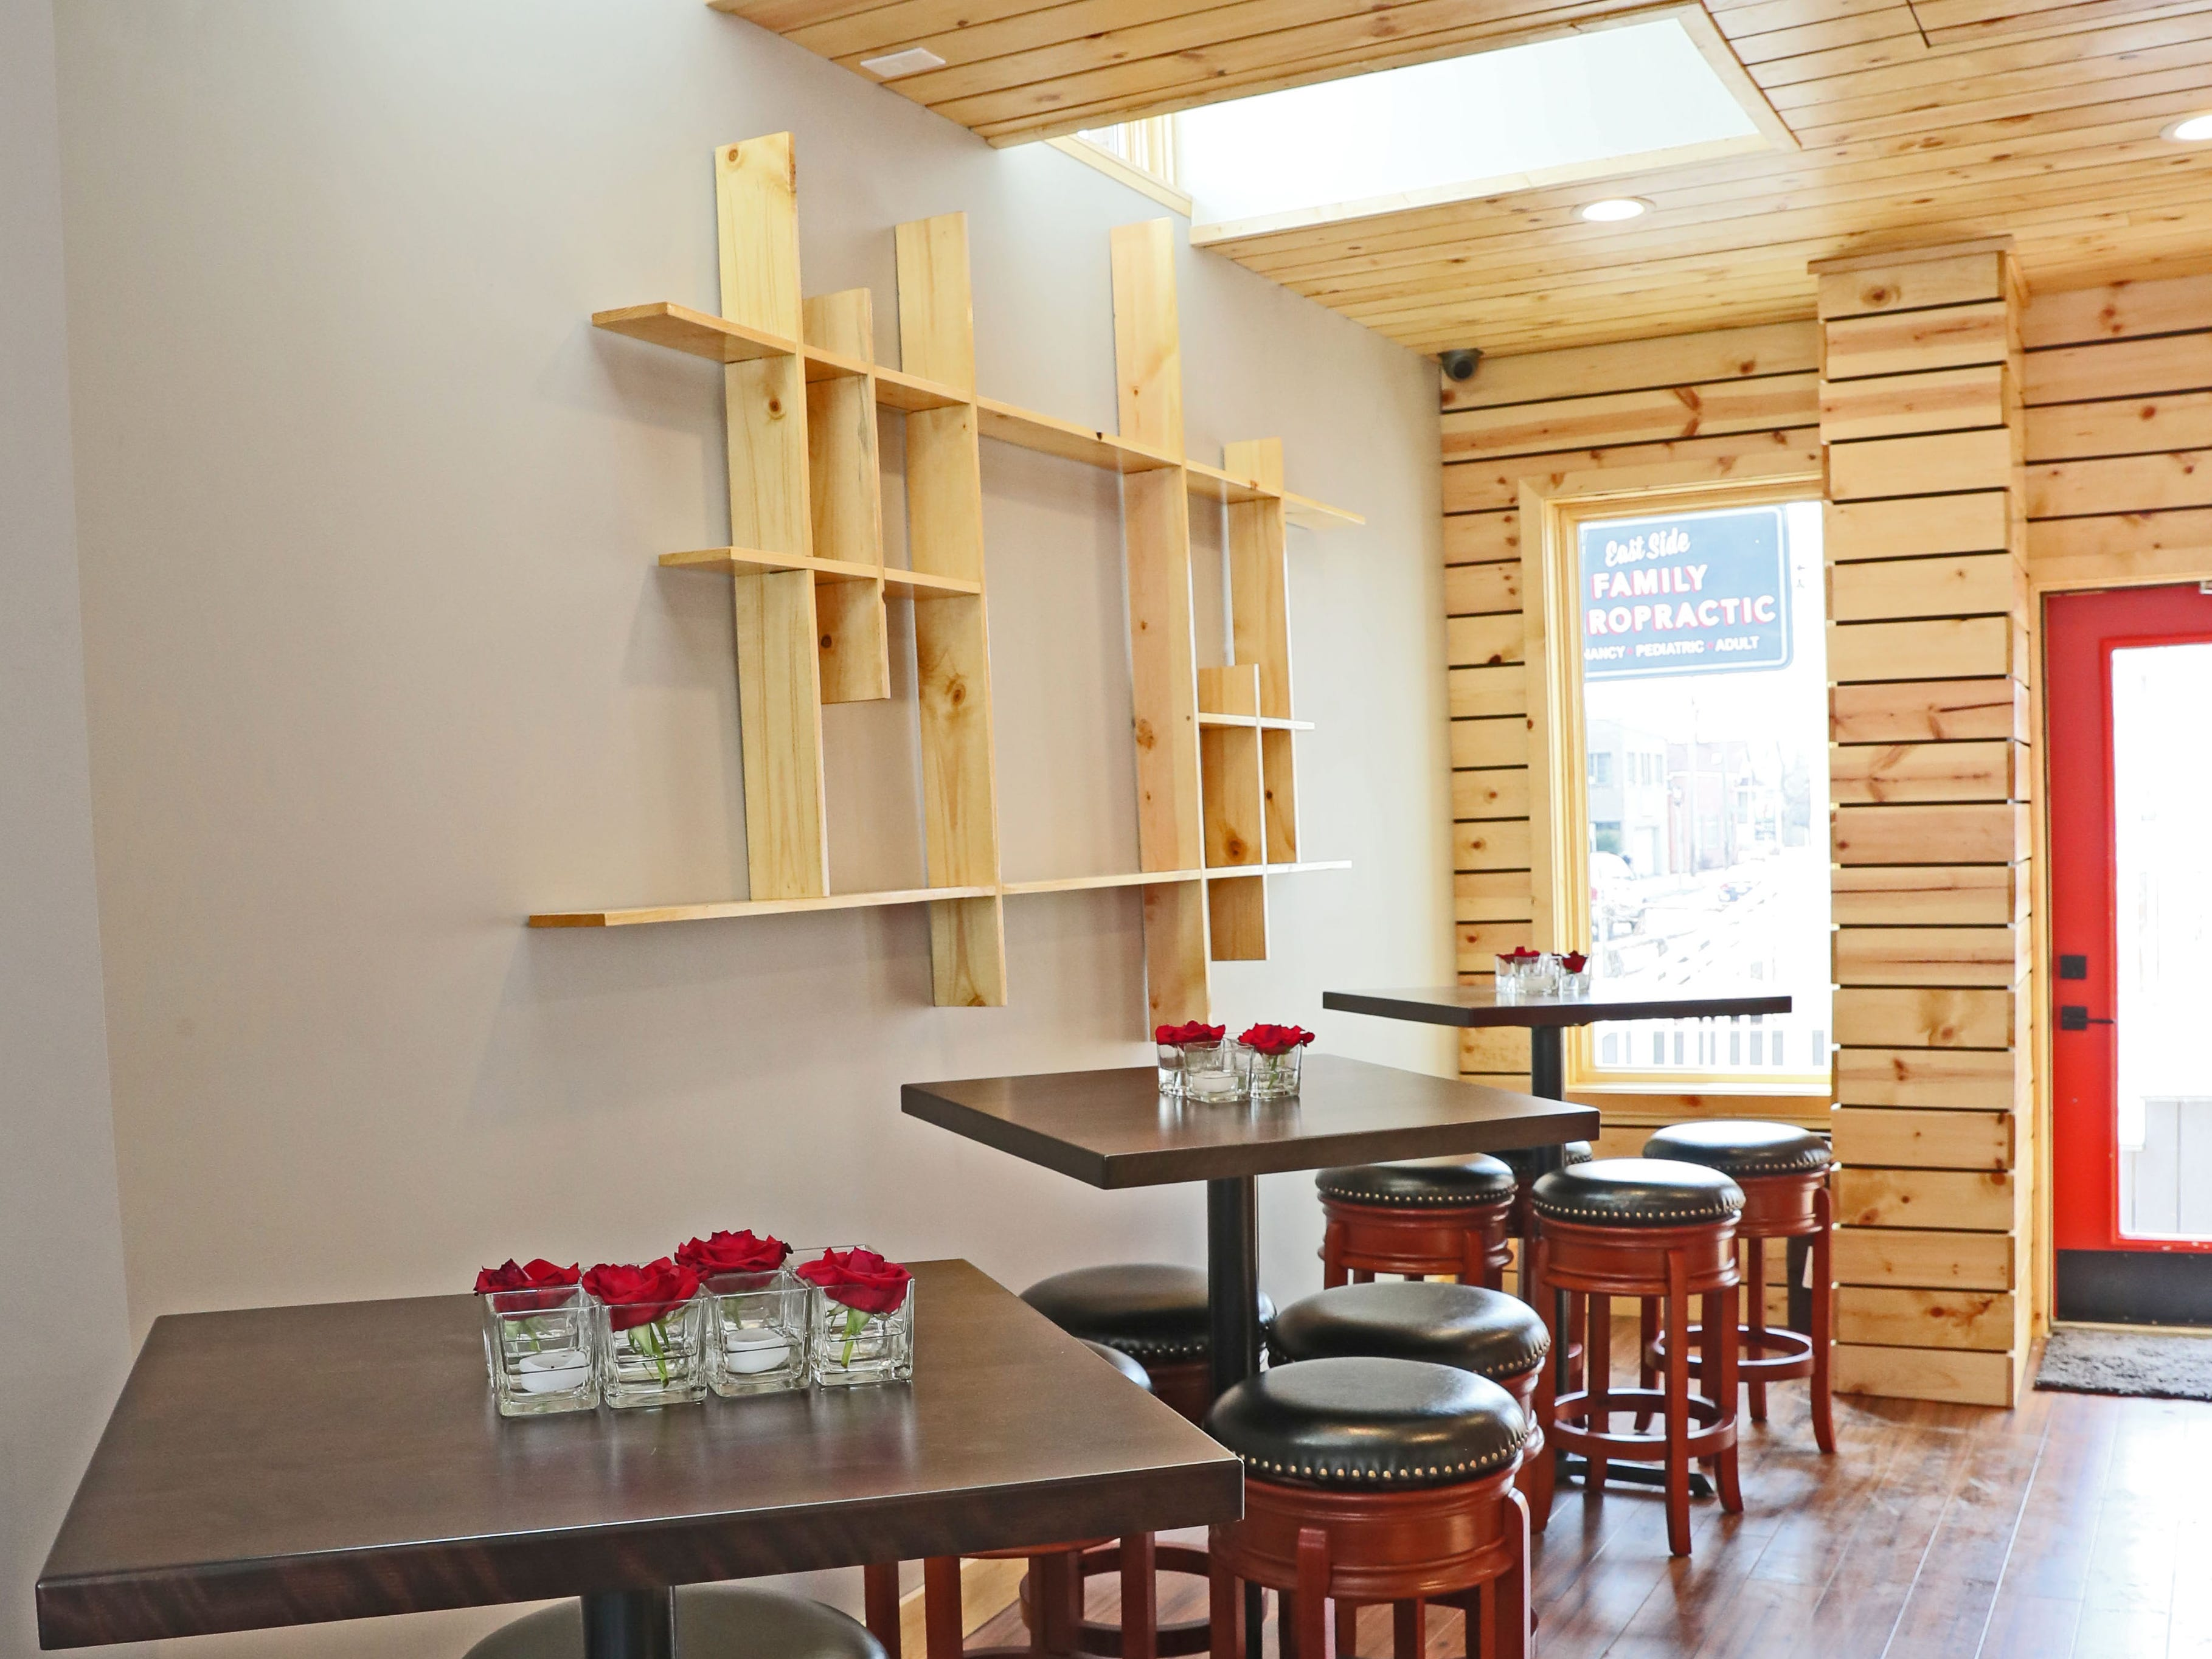 Baccanera is a new wine bar at 1732 E. North Ave in Milwaukee.    Skylights brighten up the this seating area.